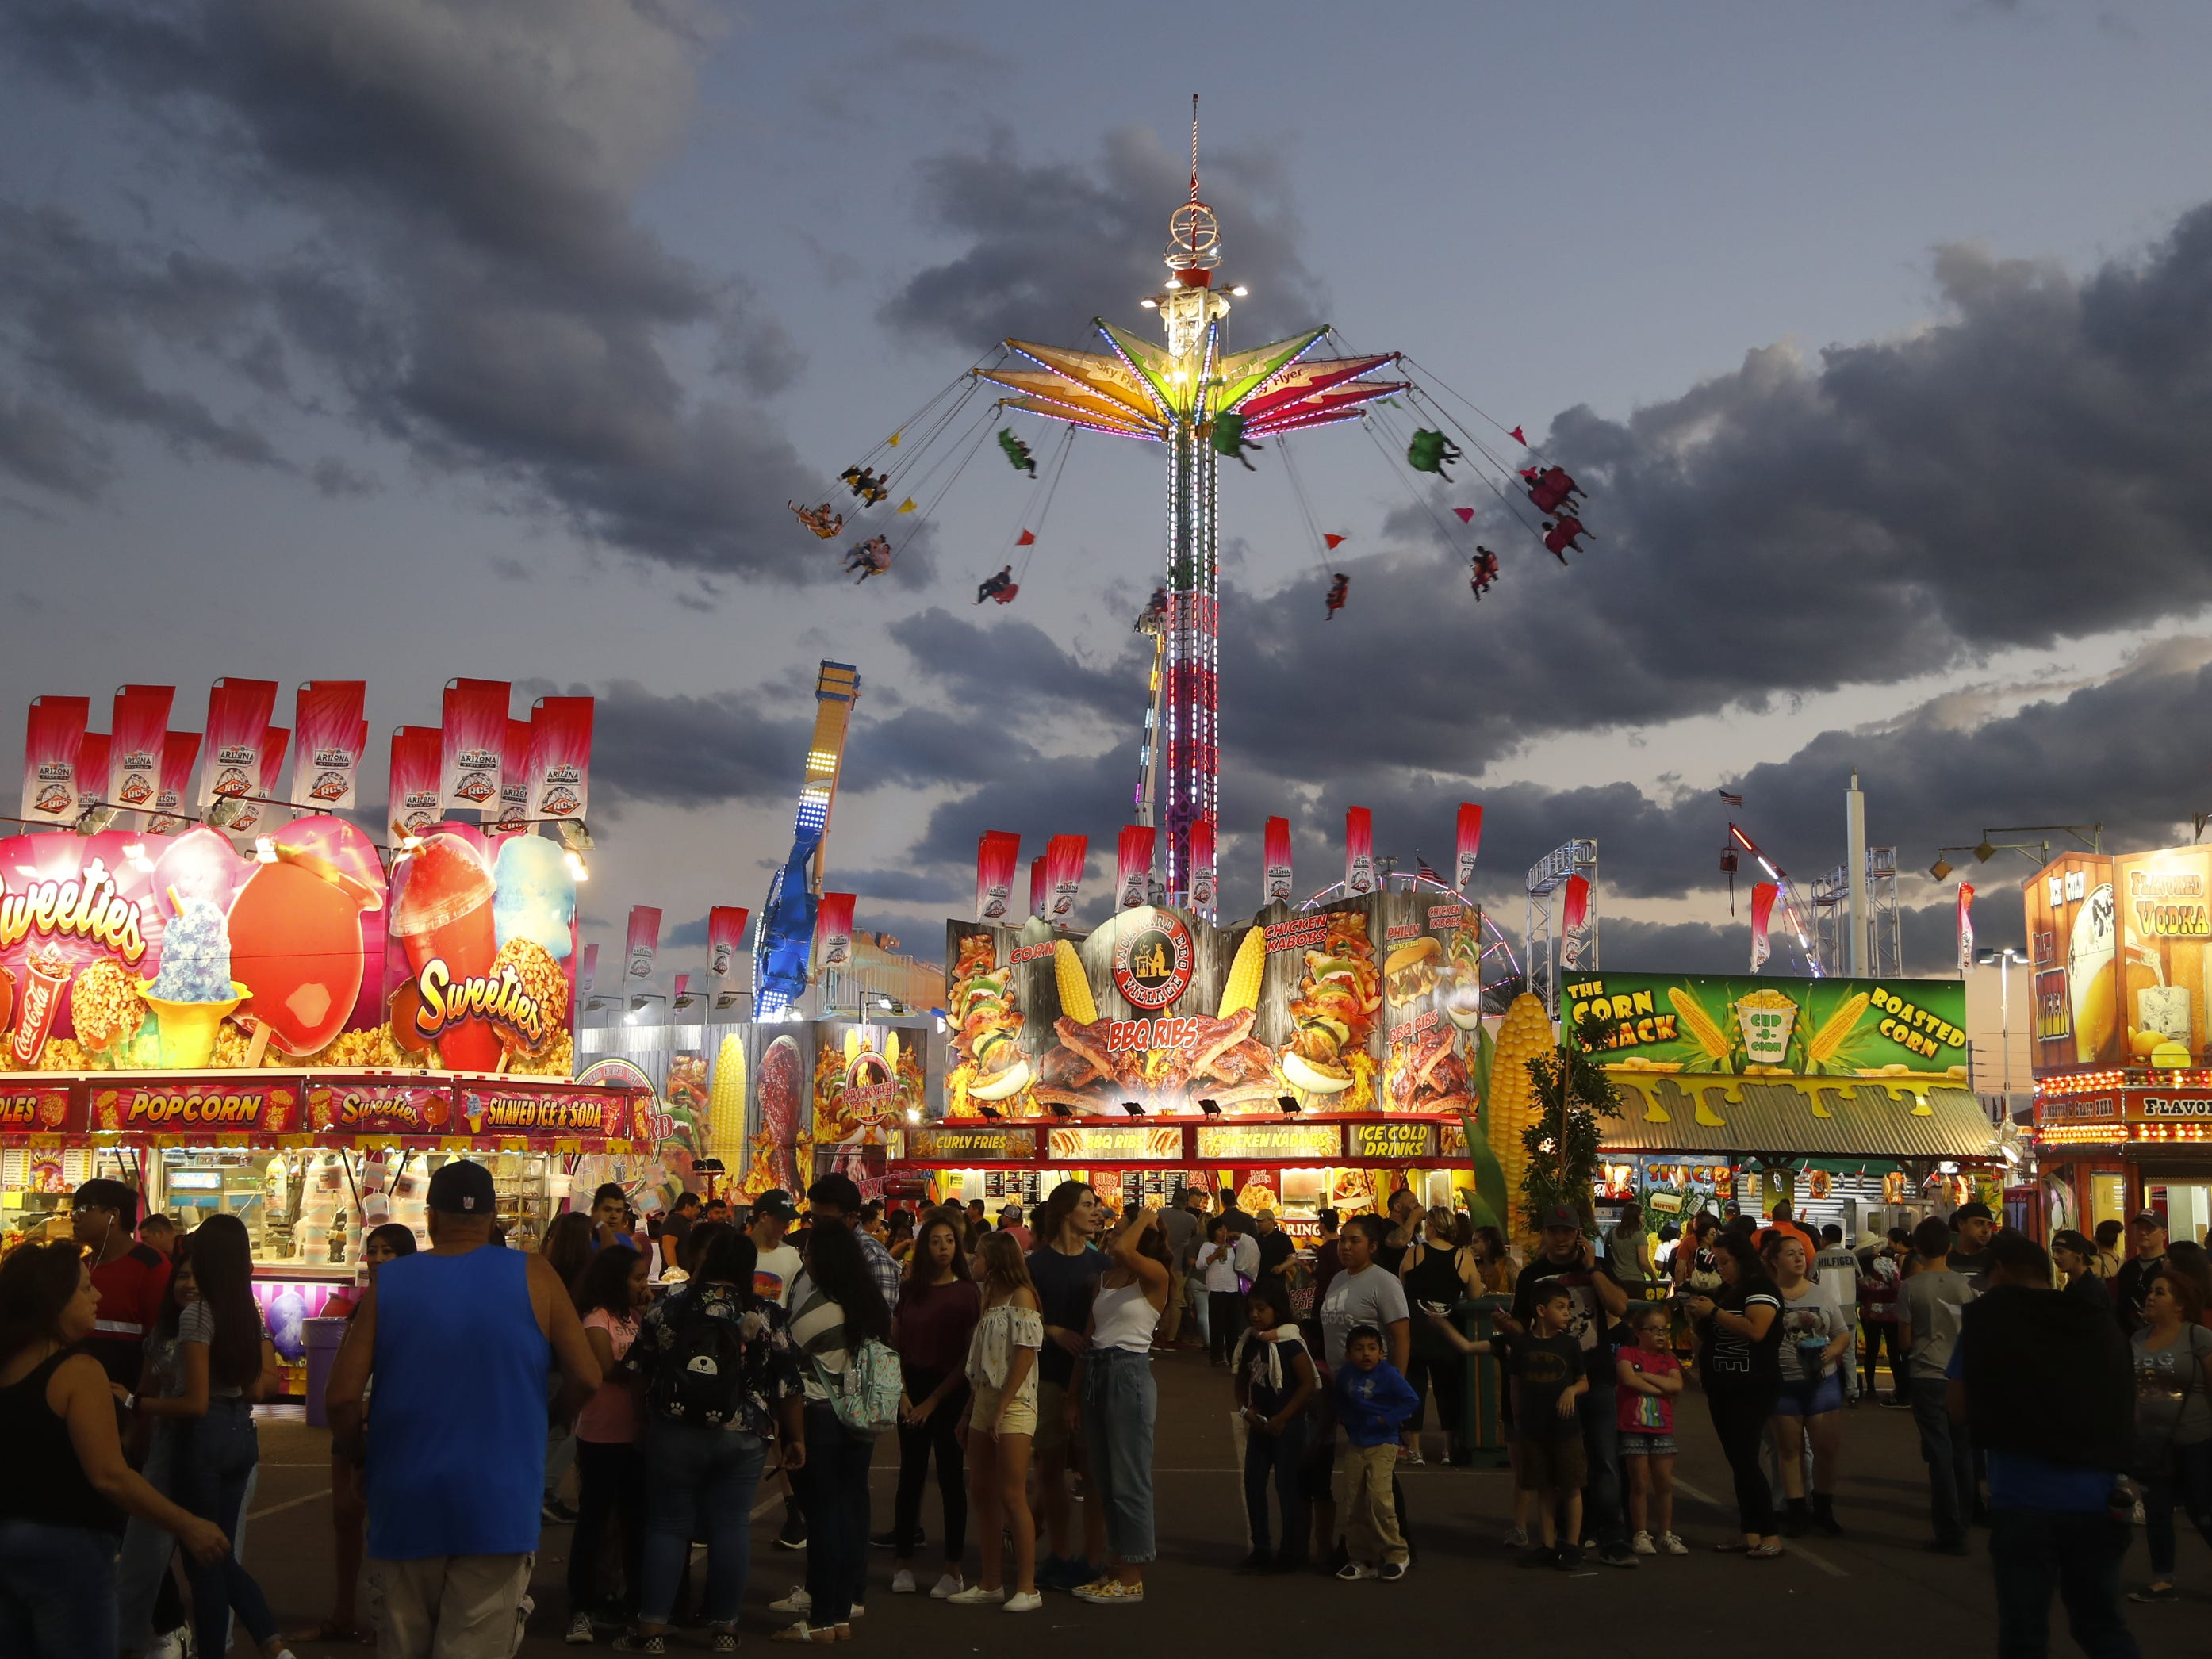 Rides and lights catches the eye at the Arizona State Fair in Phoenix, Ariz. on October 21, 2018.